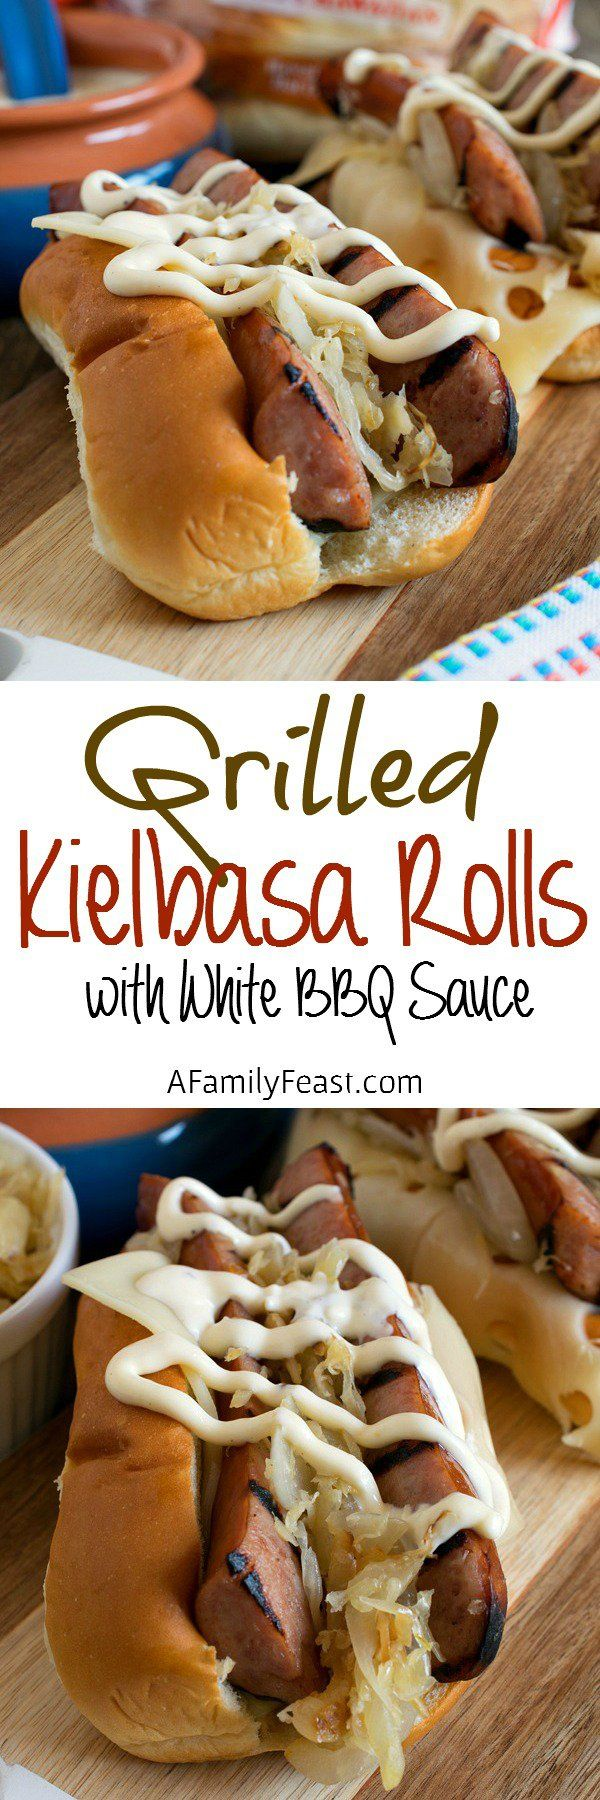 Grilled Kielbasa Rolls with White Barbecue Sauce - A Family Feast